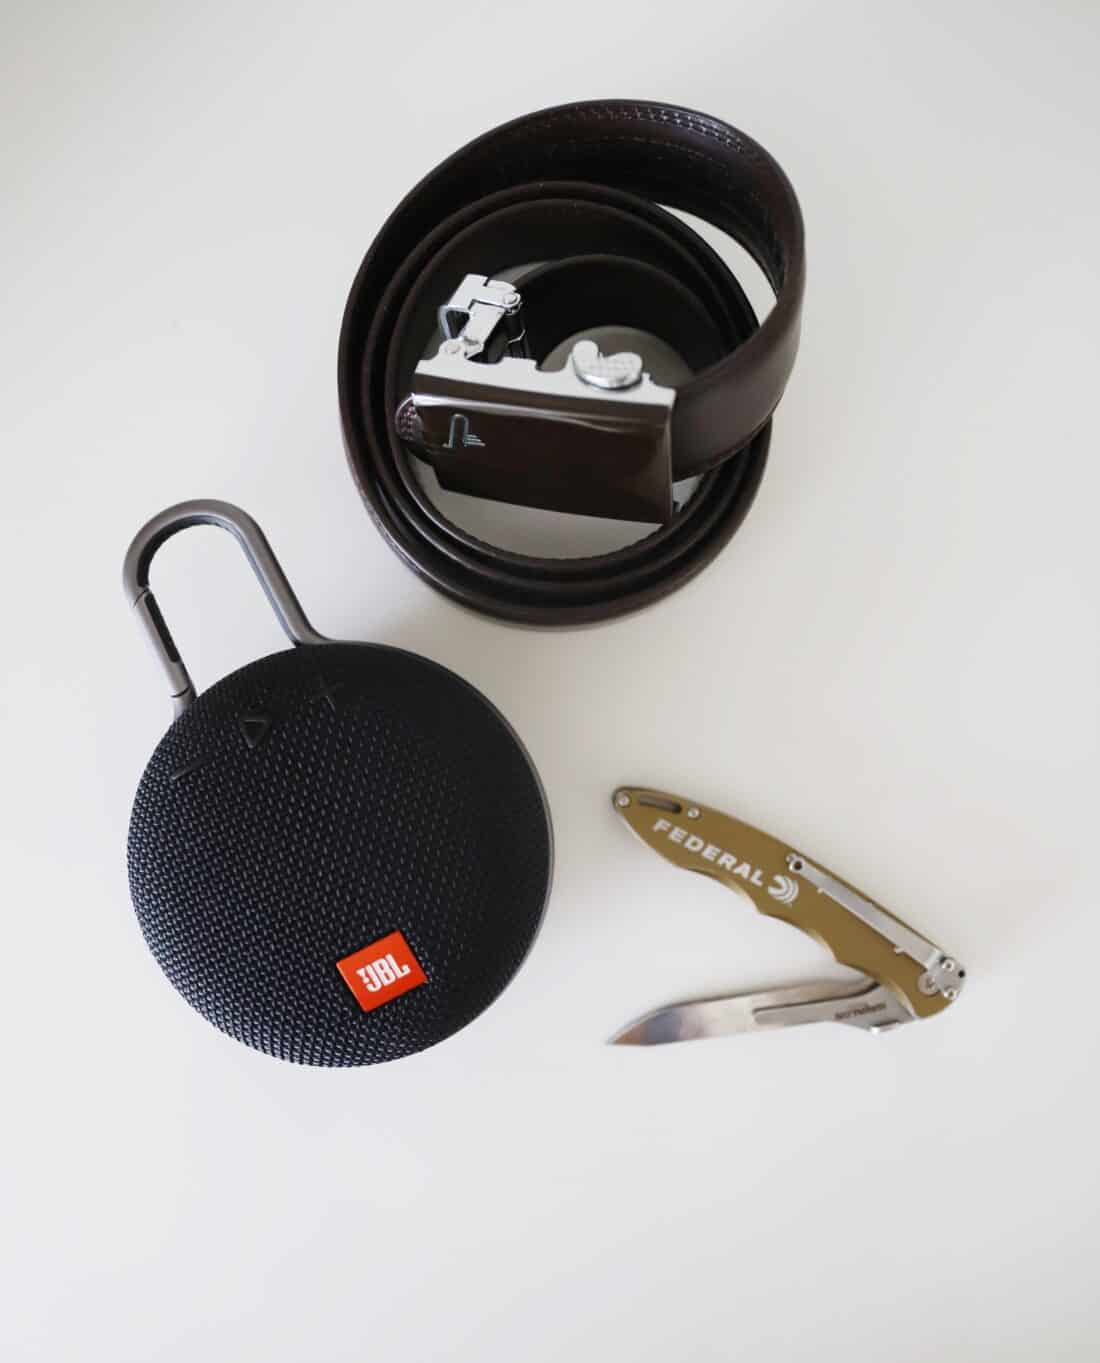 belt speaker and knife on a white counter